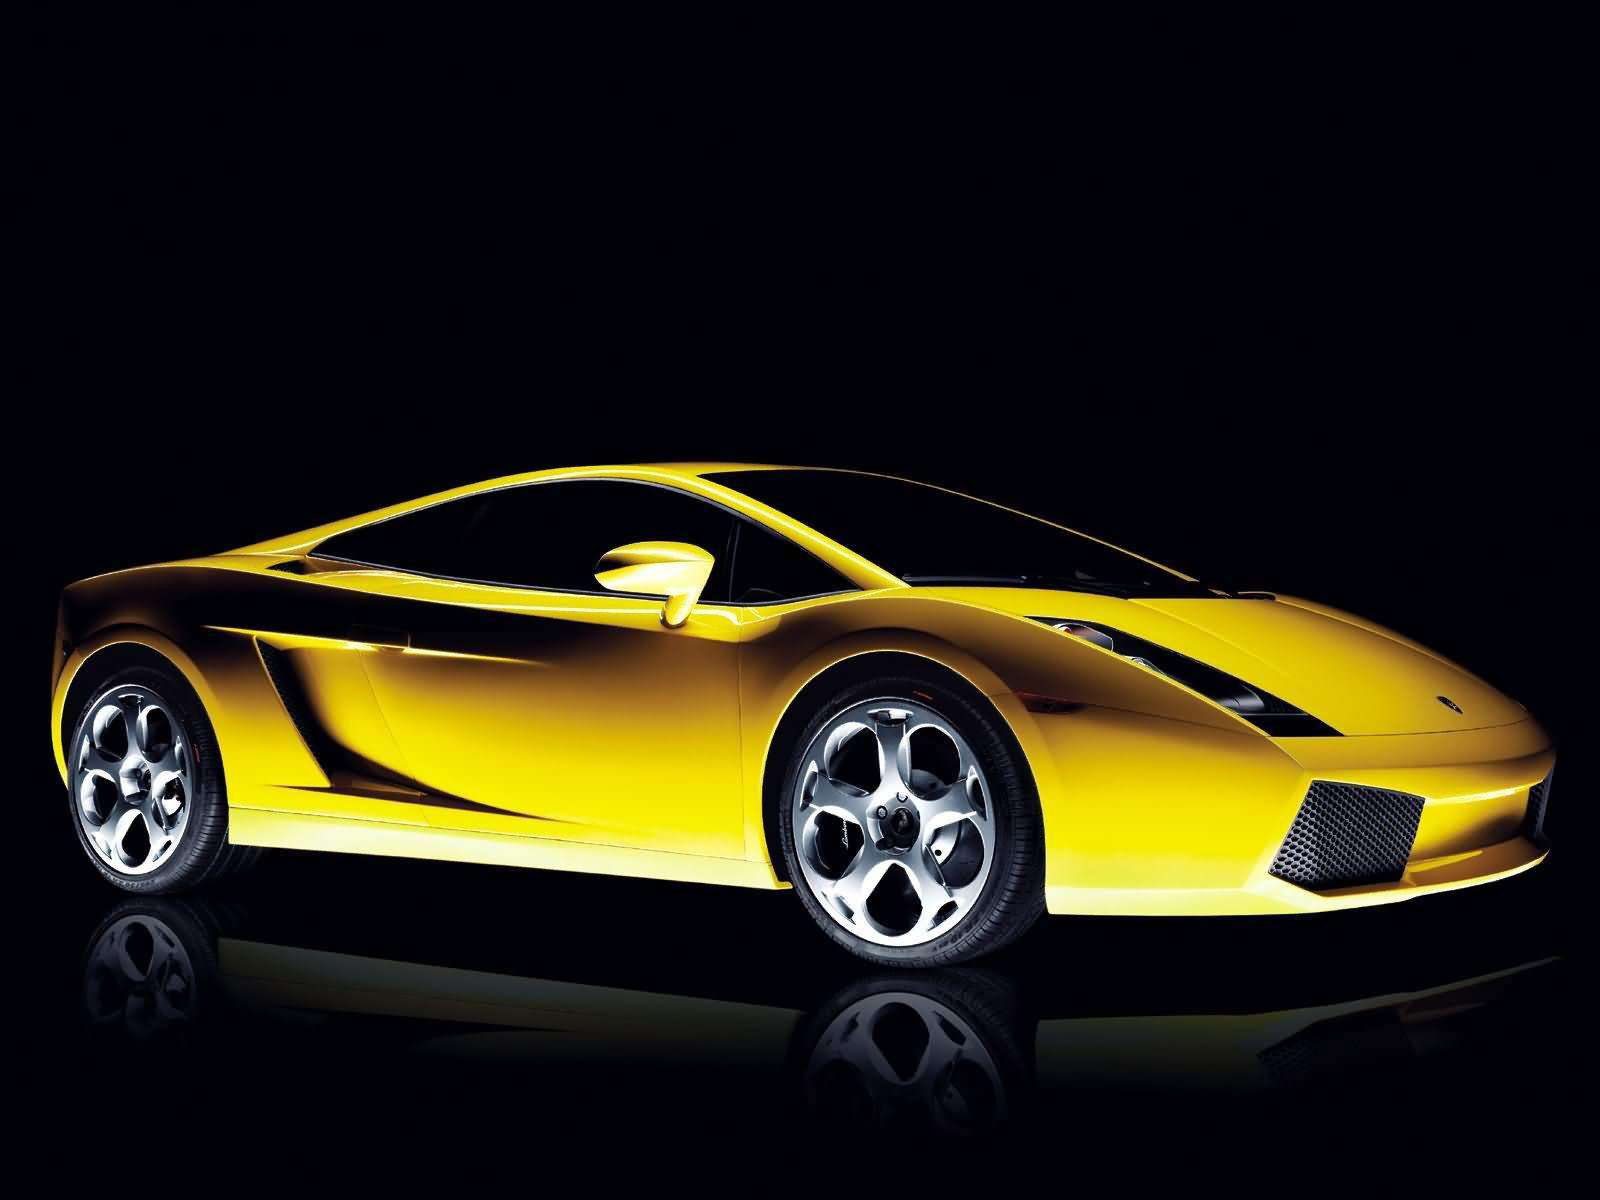 quot to create quotself up beautiful insurance with year supercar researchers old healing mit for of teams lamborghini